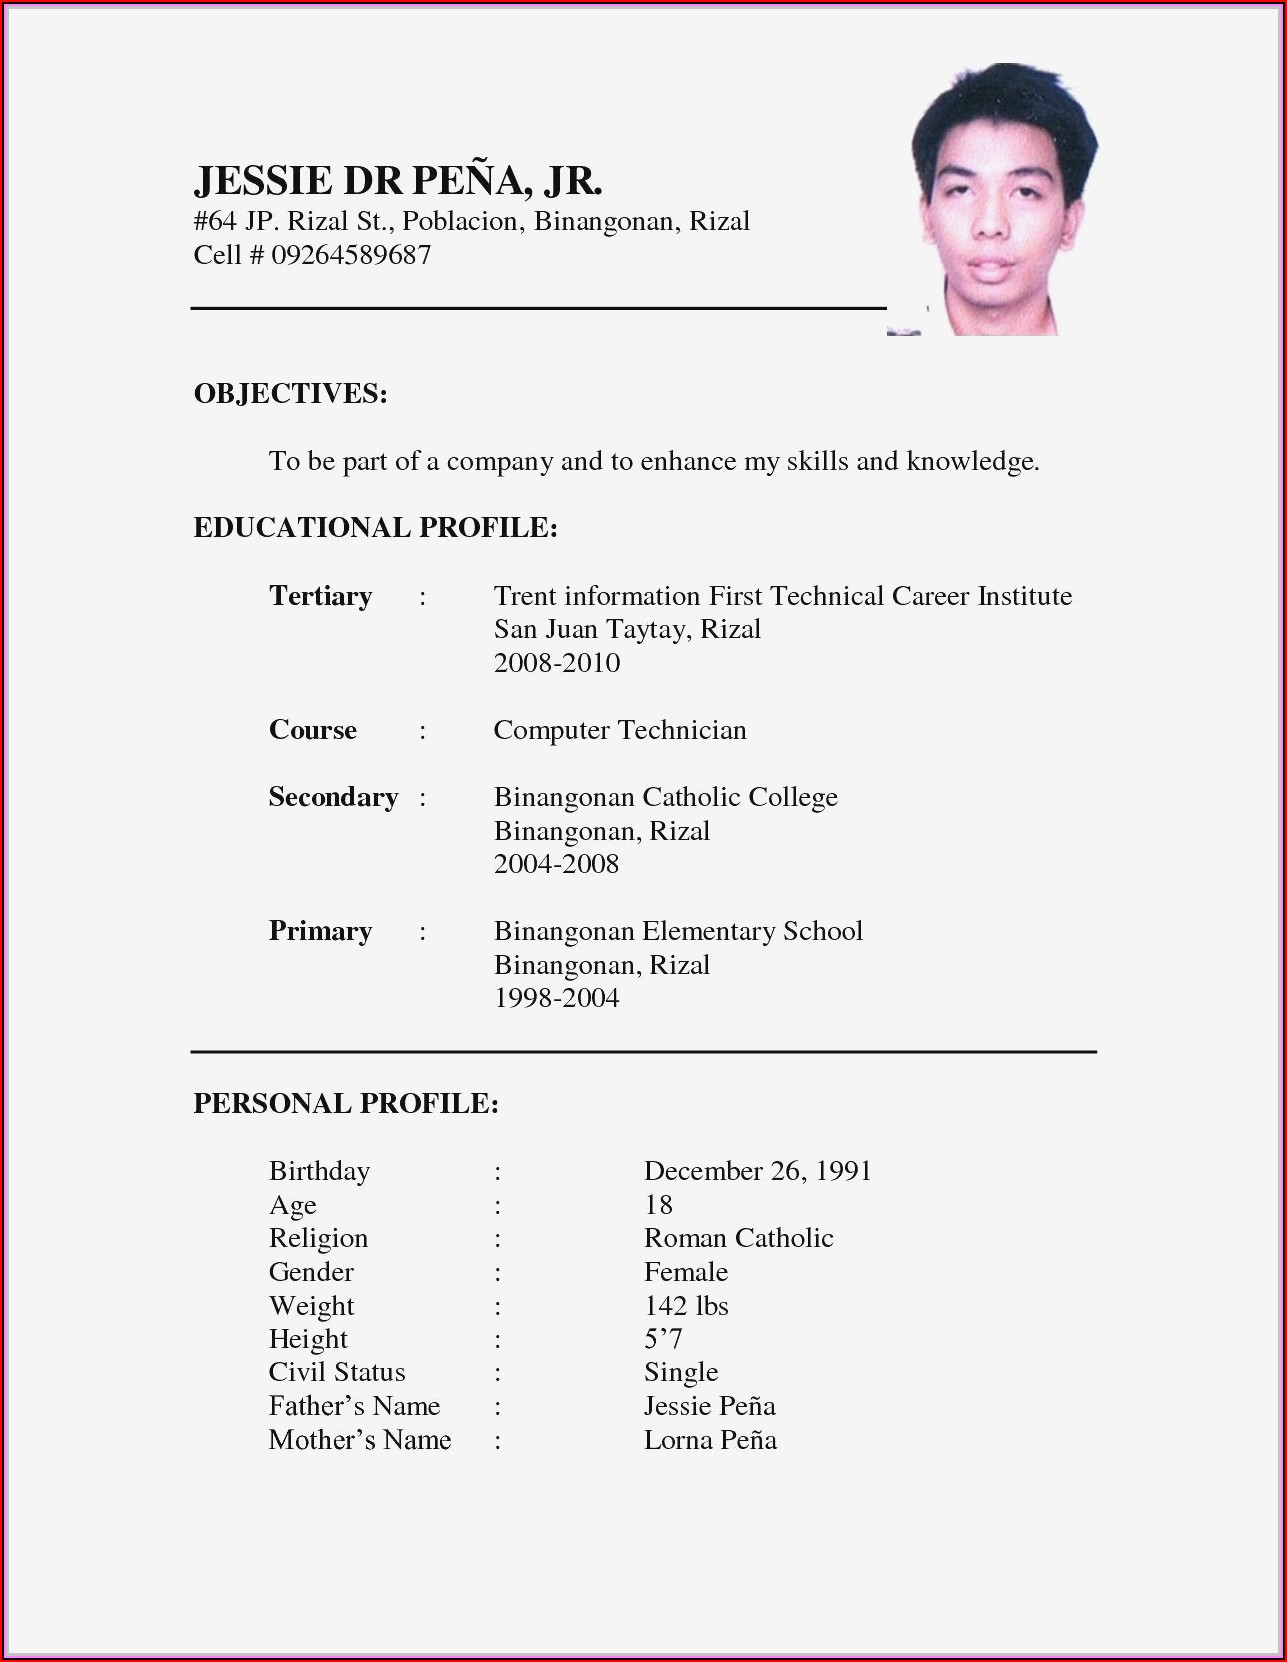 Sample Resume For Nurses With Experience Australia